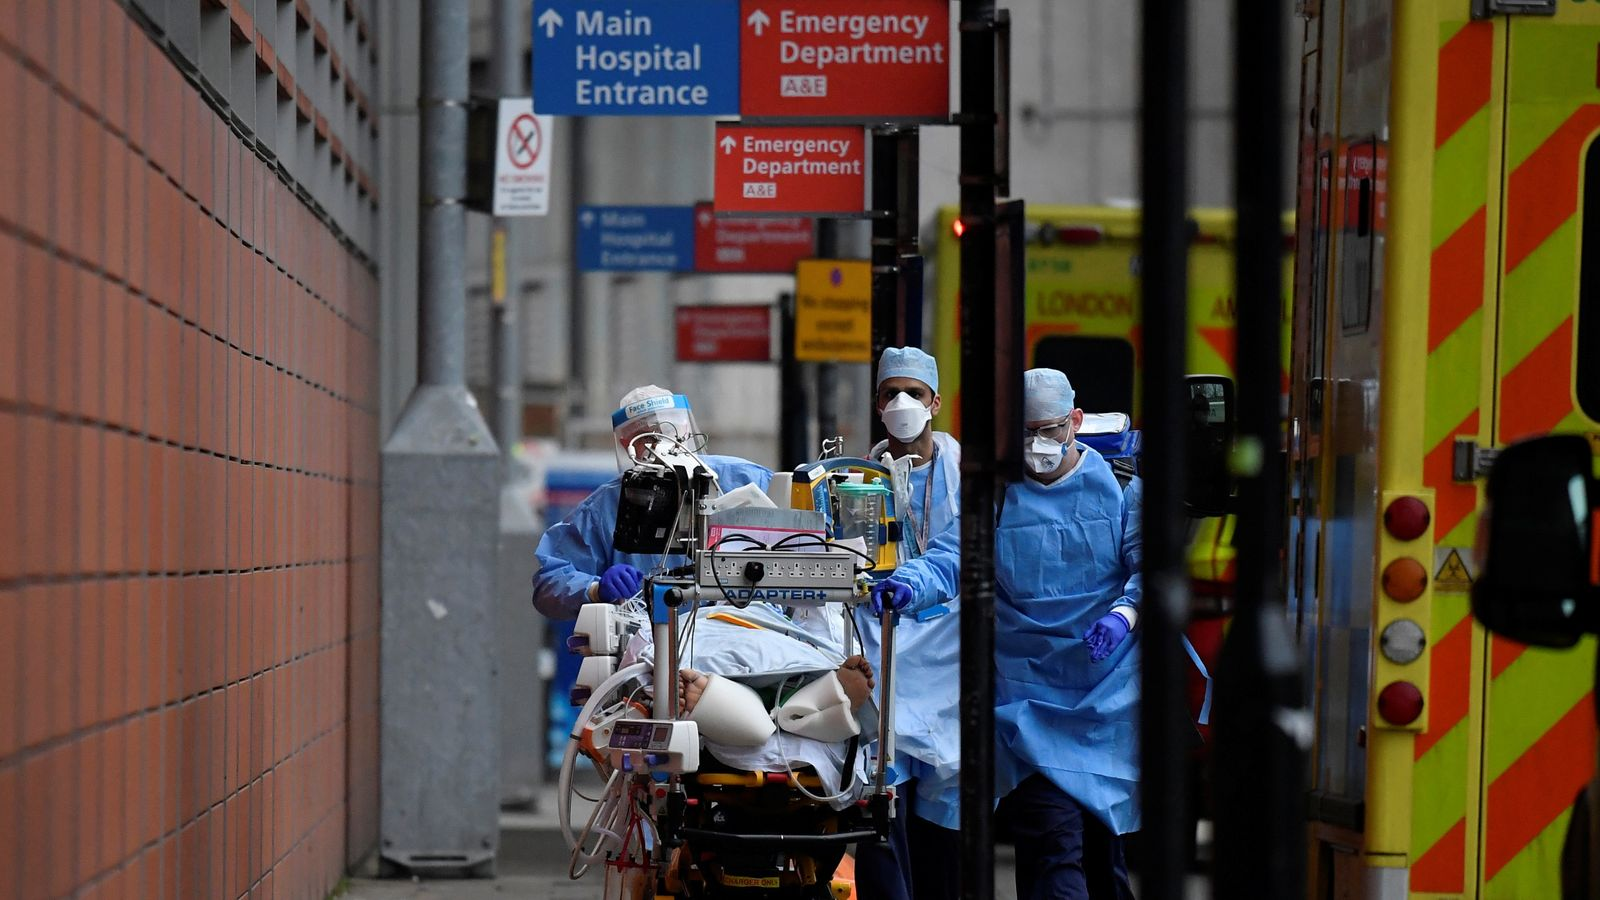 COVID-19: More than 17 million people have received first jab - as deaths surpass 120,000 - Sky News